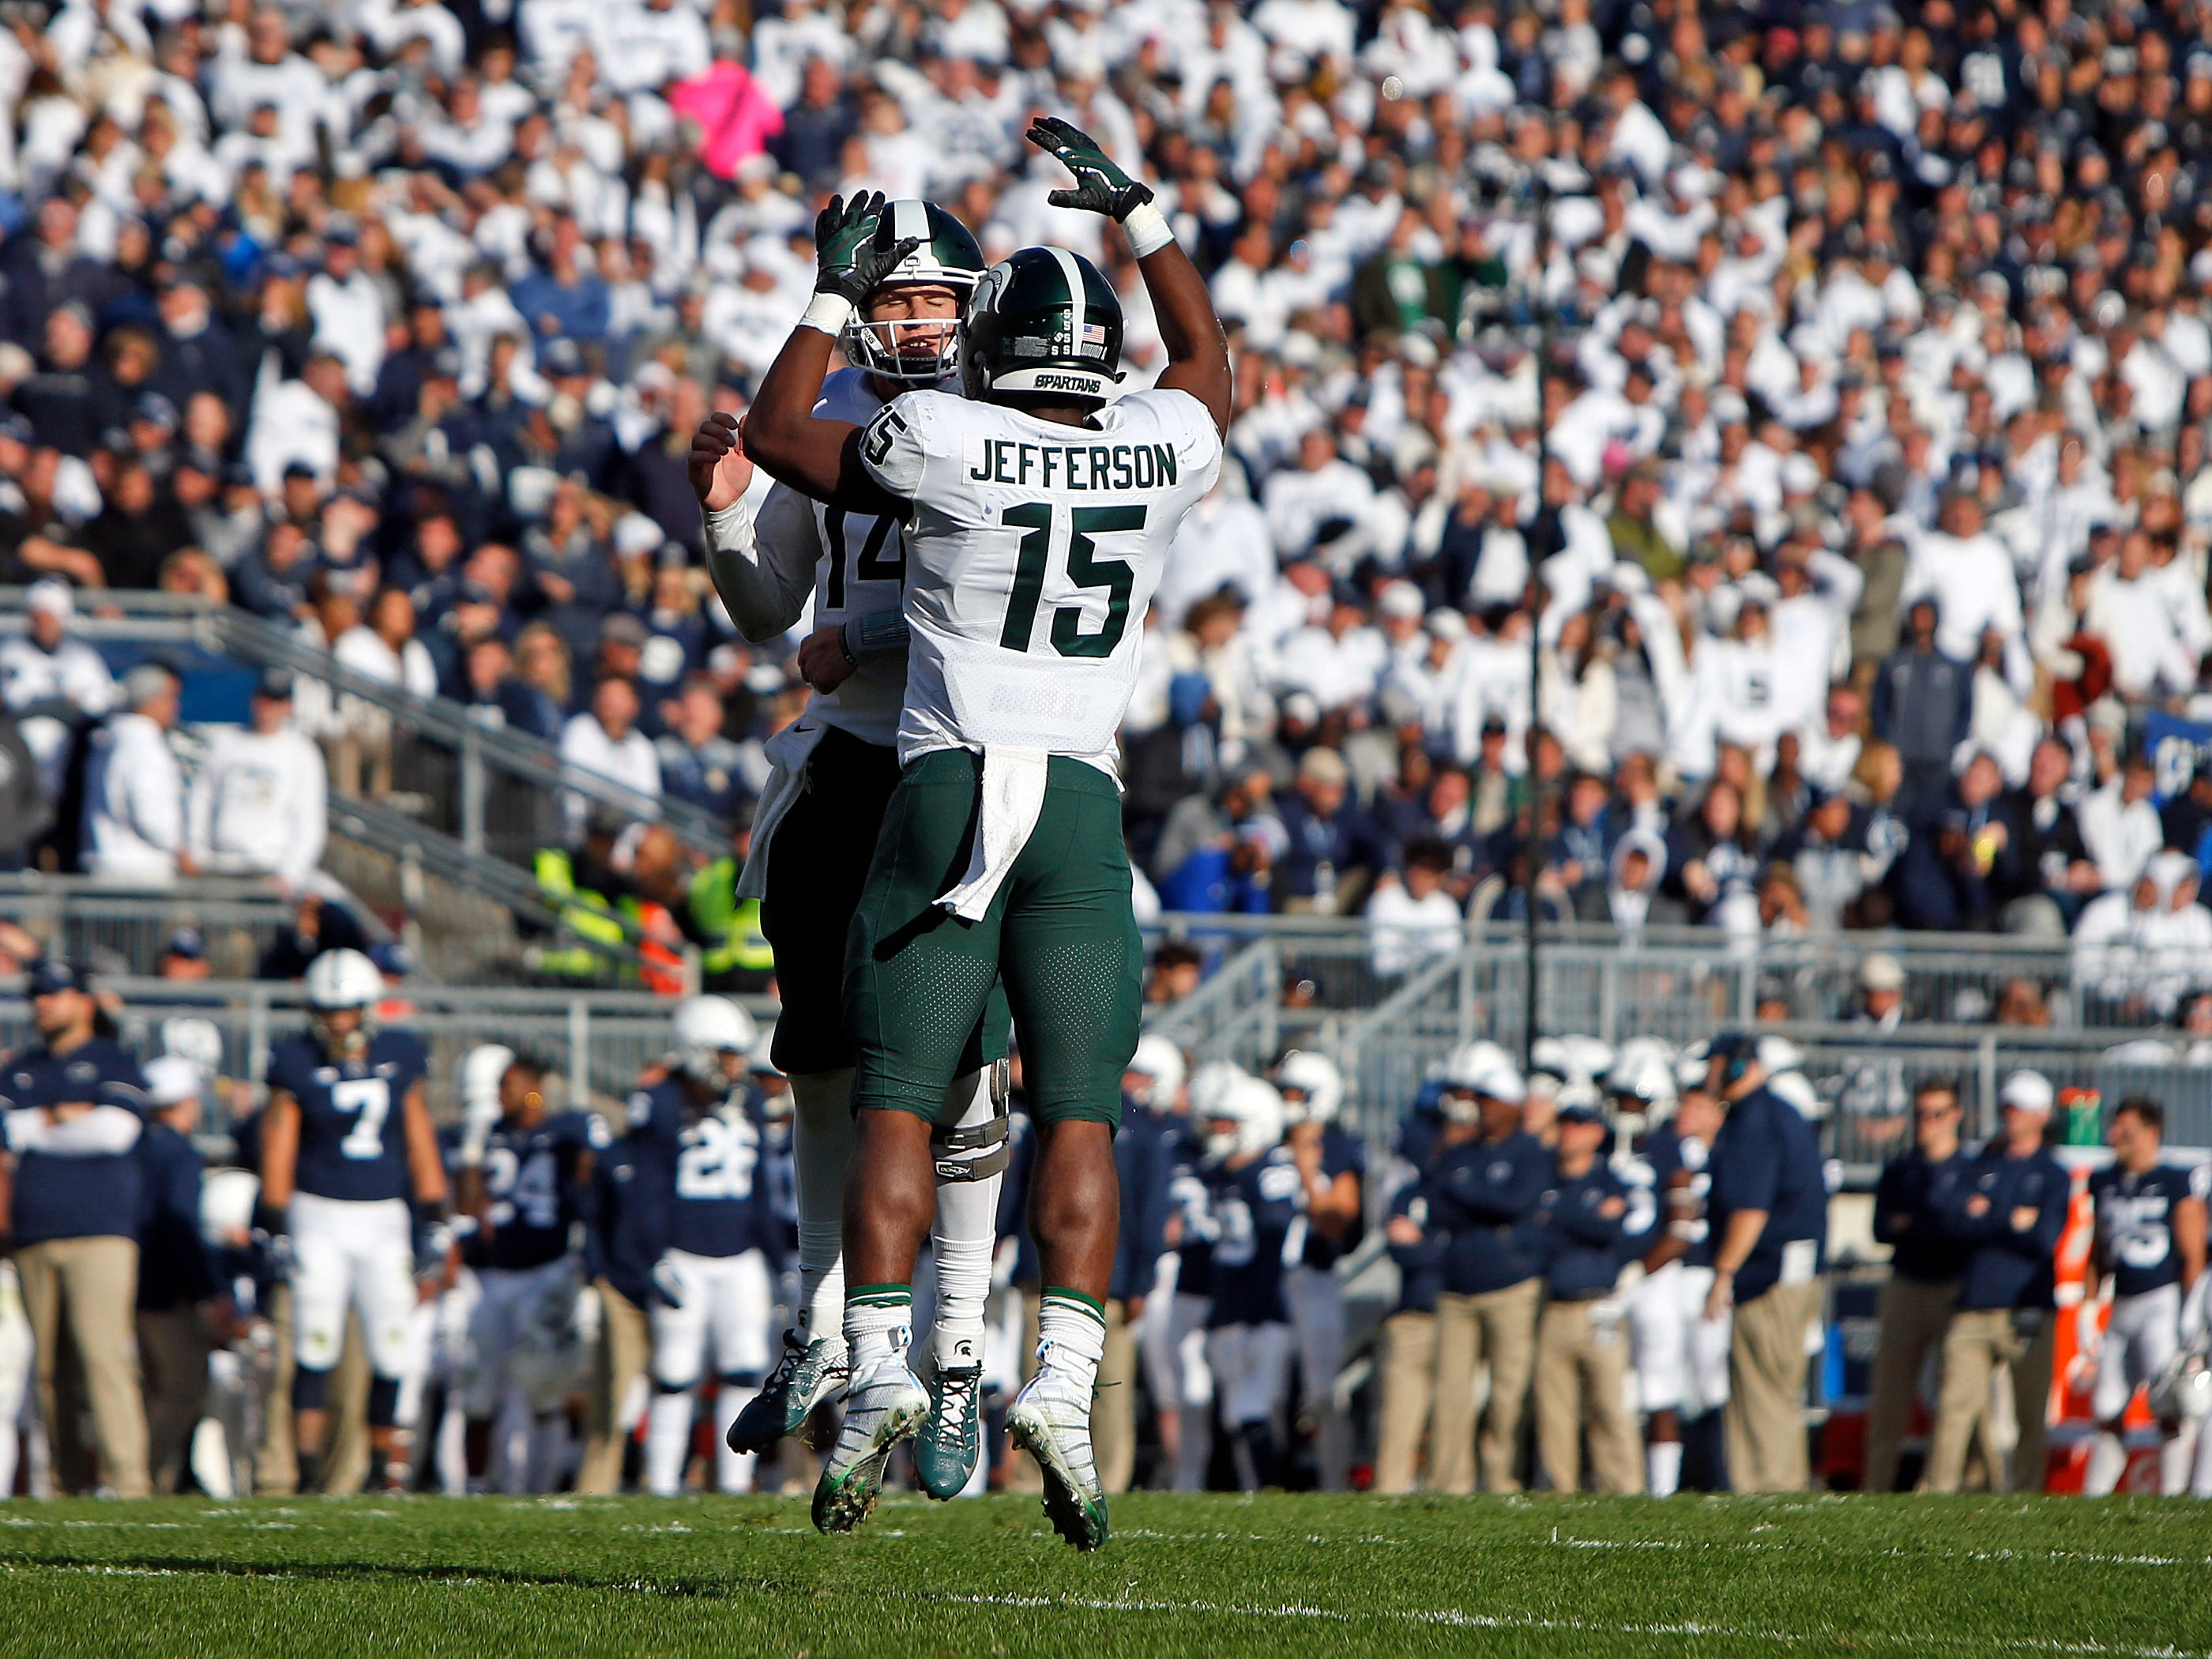 La'Darius Jefferson #15 of the Michigan State Spartans celebrates with Brian Lewerke #14 after scoring a 1 yard touchdown in the first half against the Penn State Nittany Lions on October 13, 2018 at Beaver Stadium in State College, Pennsylvania.